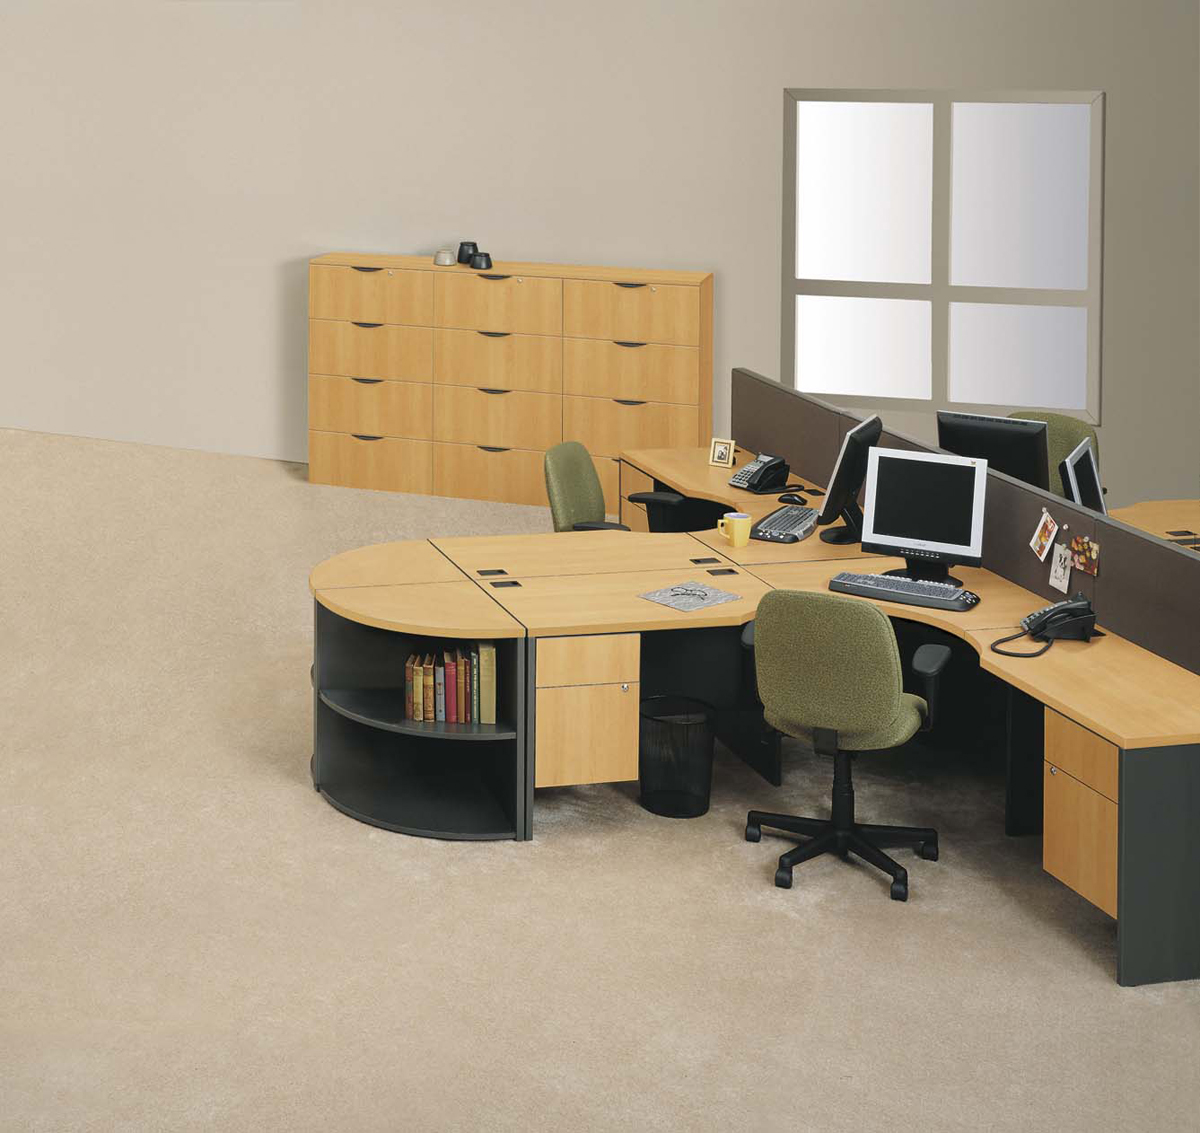 5 office furniture stores fort wayne indiana 100 for Office furniture stores